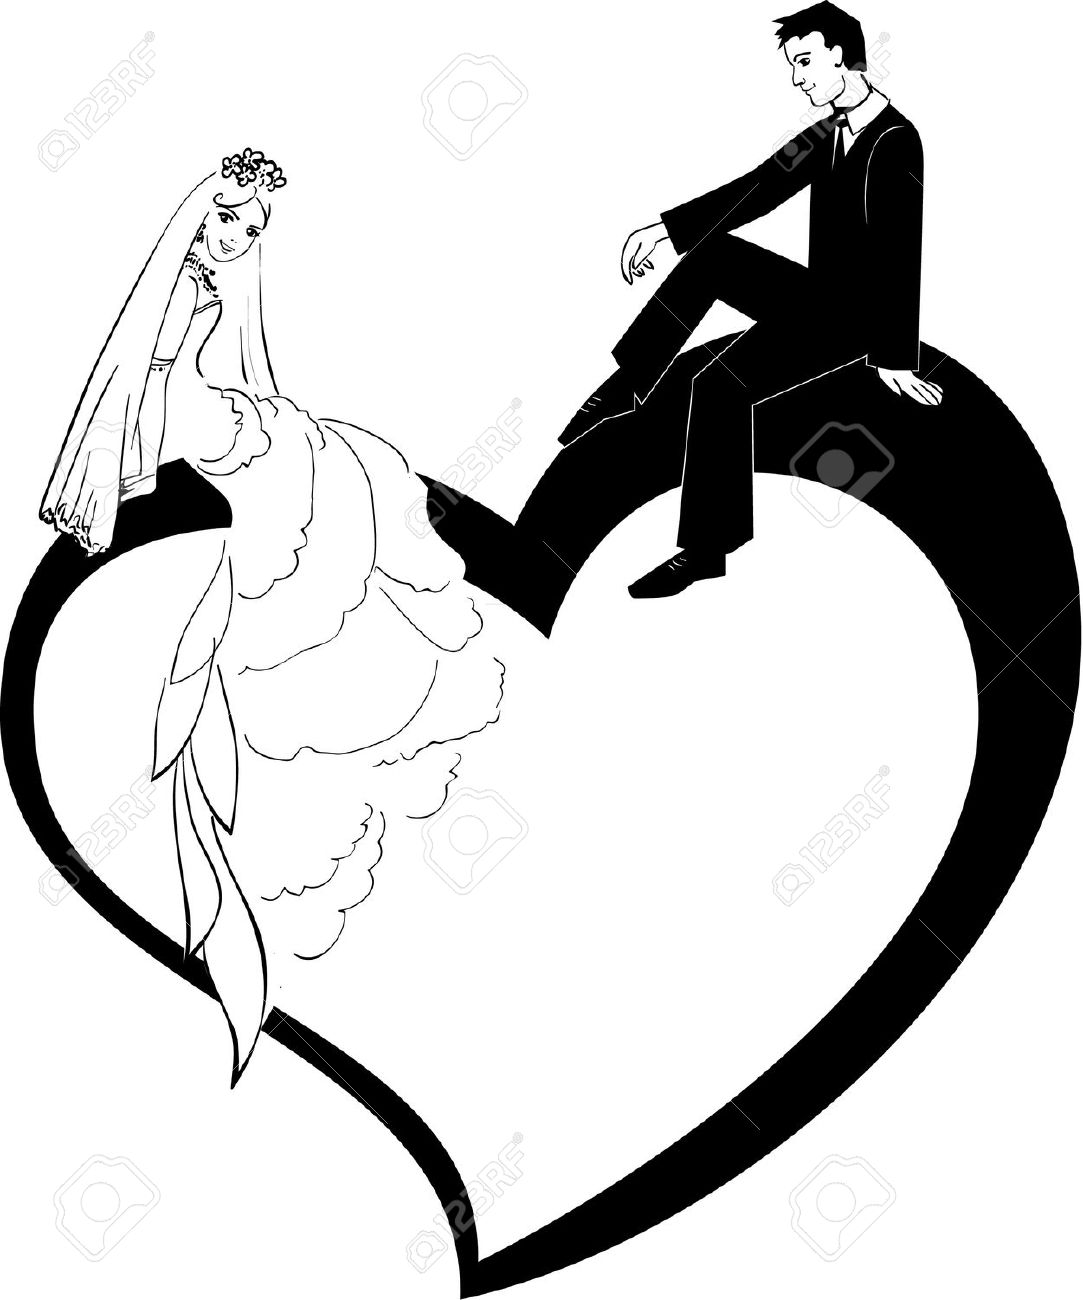 1083x1300 K.o.p.e.l. Clipart Wedding Vector